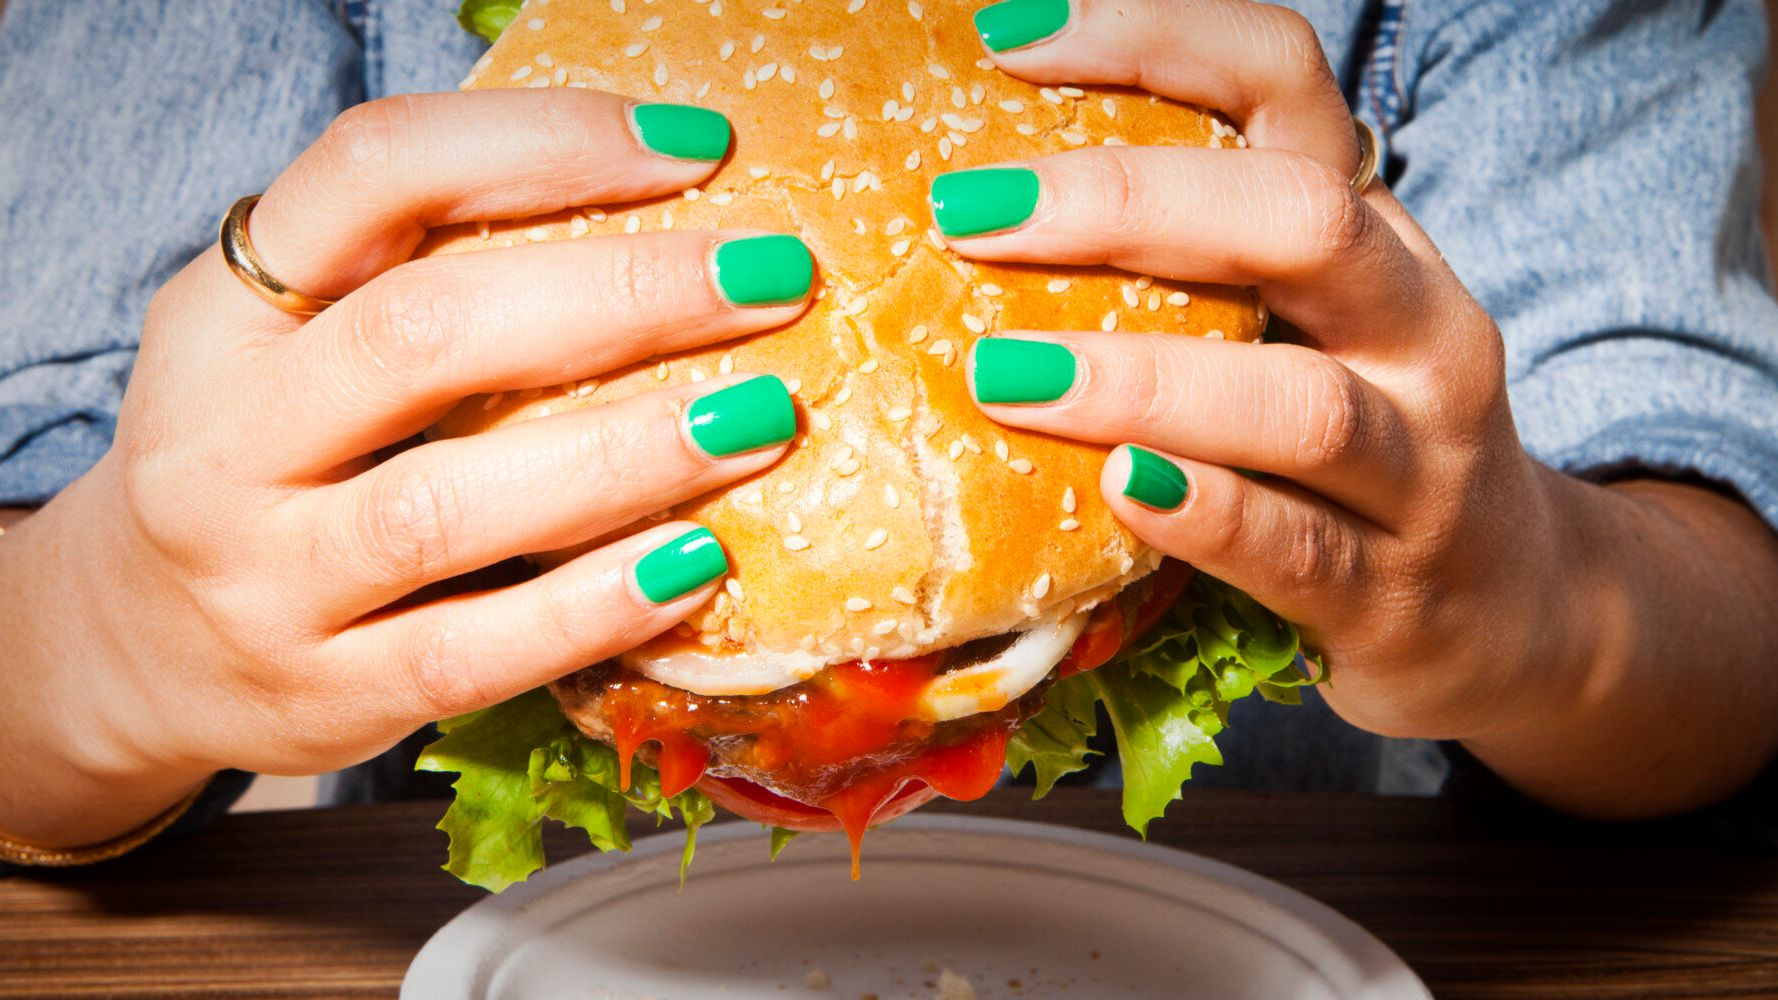 Eating Junk Food Kills Off Stomach Bacteria That Helps You Stay Slim